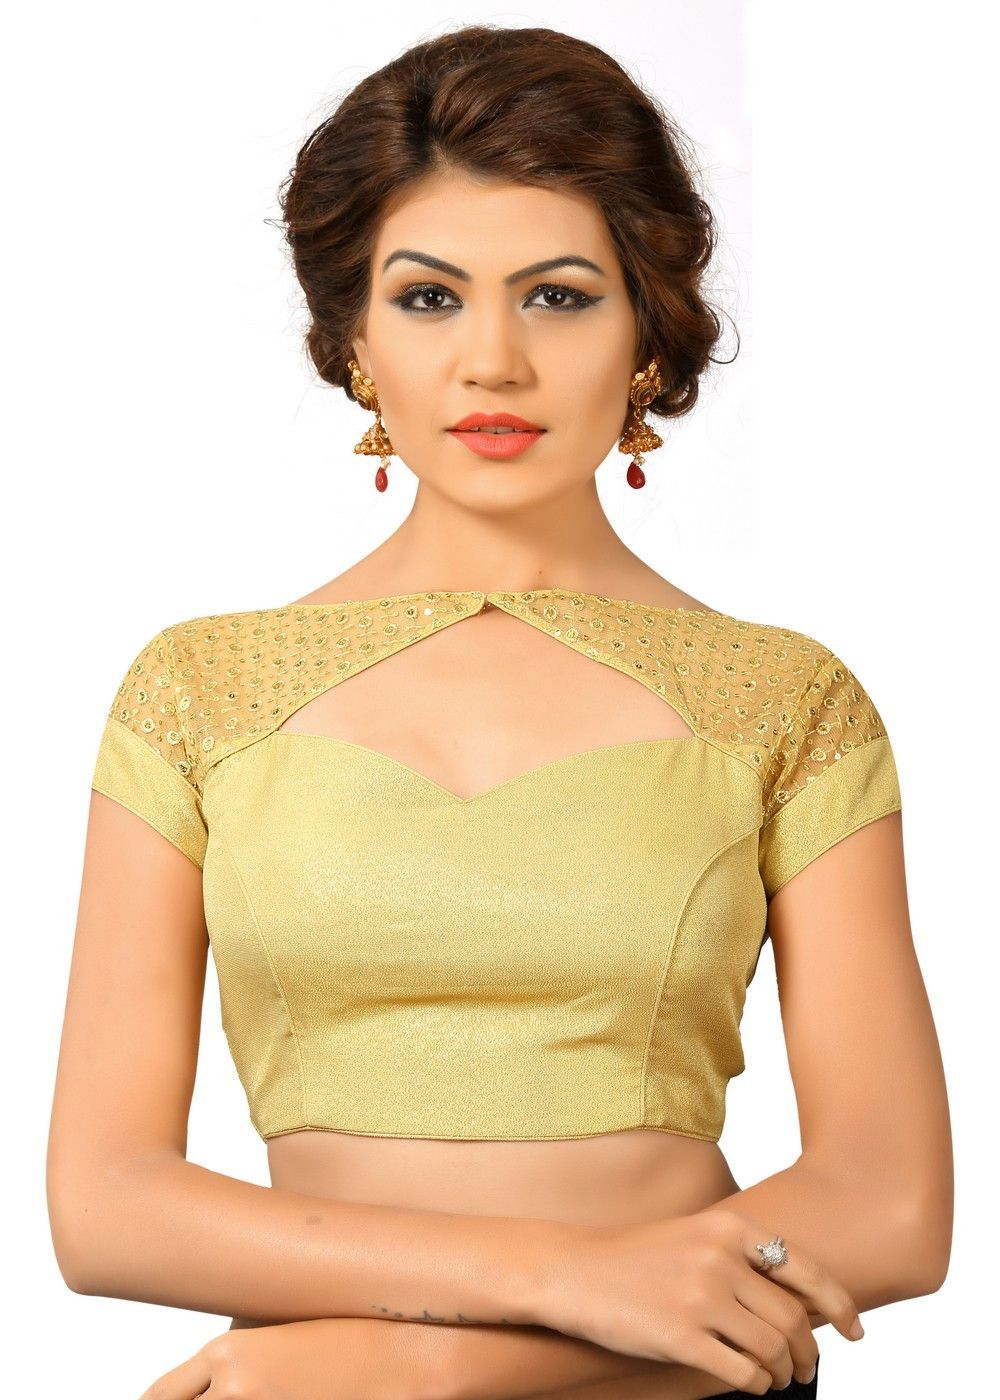 Gold Net Fancy Back Open Saree Blouse Choli SNT-X-402-GOLD | Pinterest